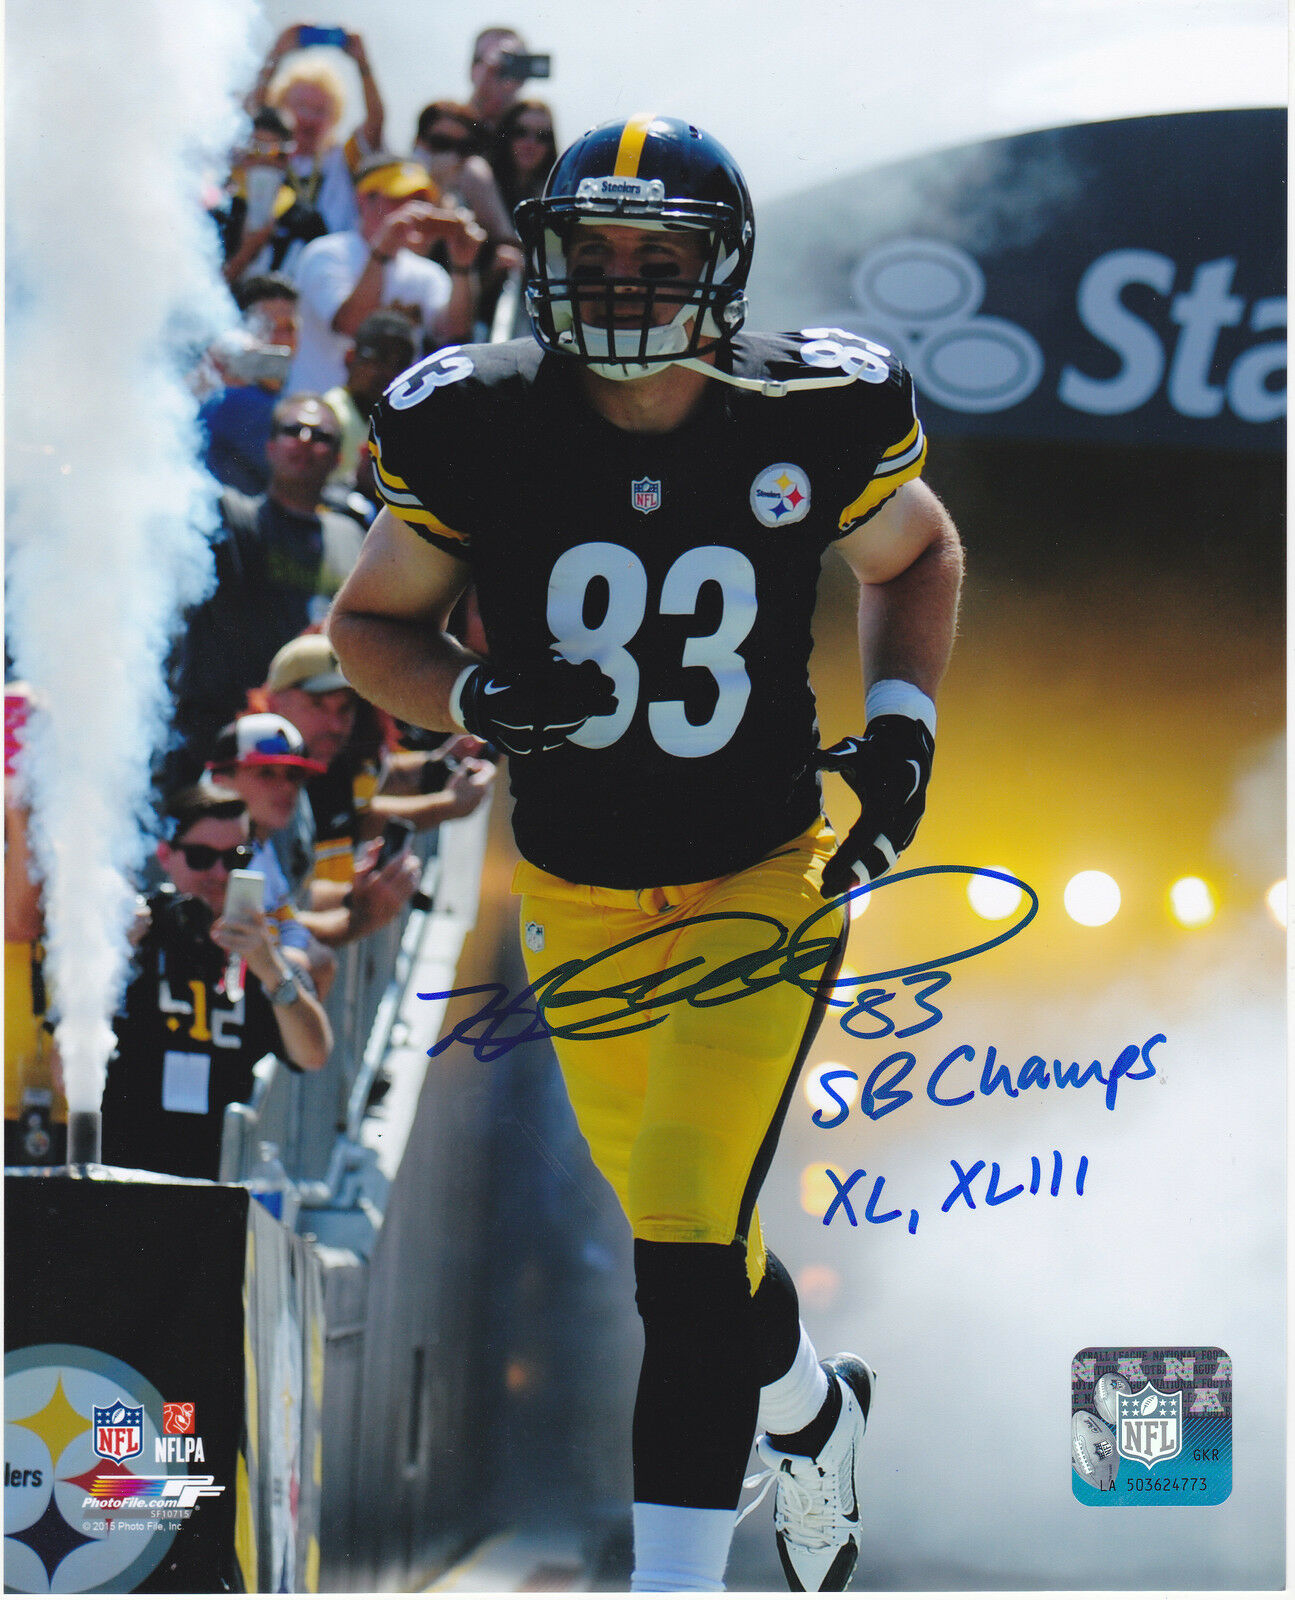 Heath Miller Pittsburgh Steelers Sb Campeones XL, Xliii Acción Firmado 8x10